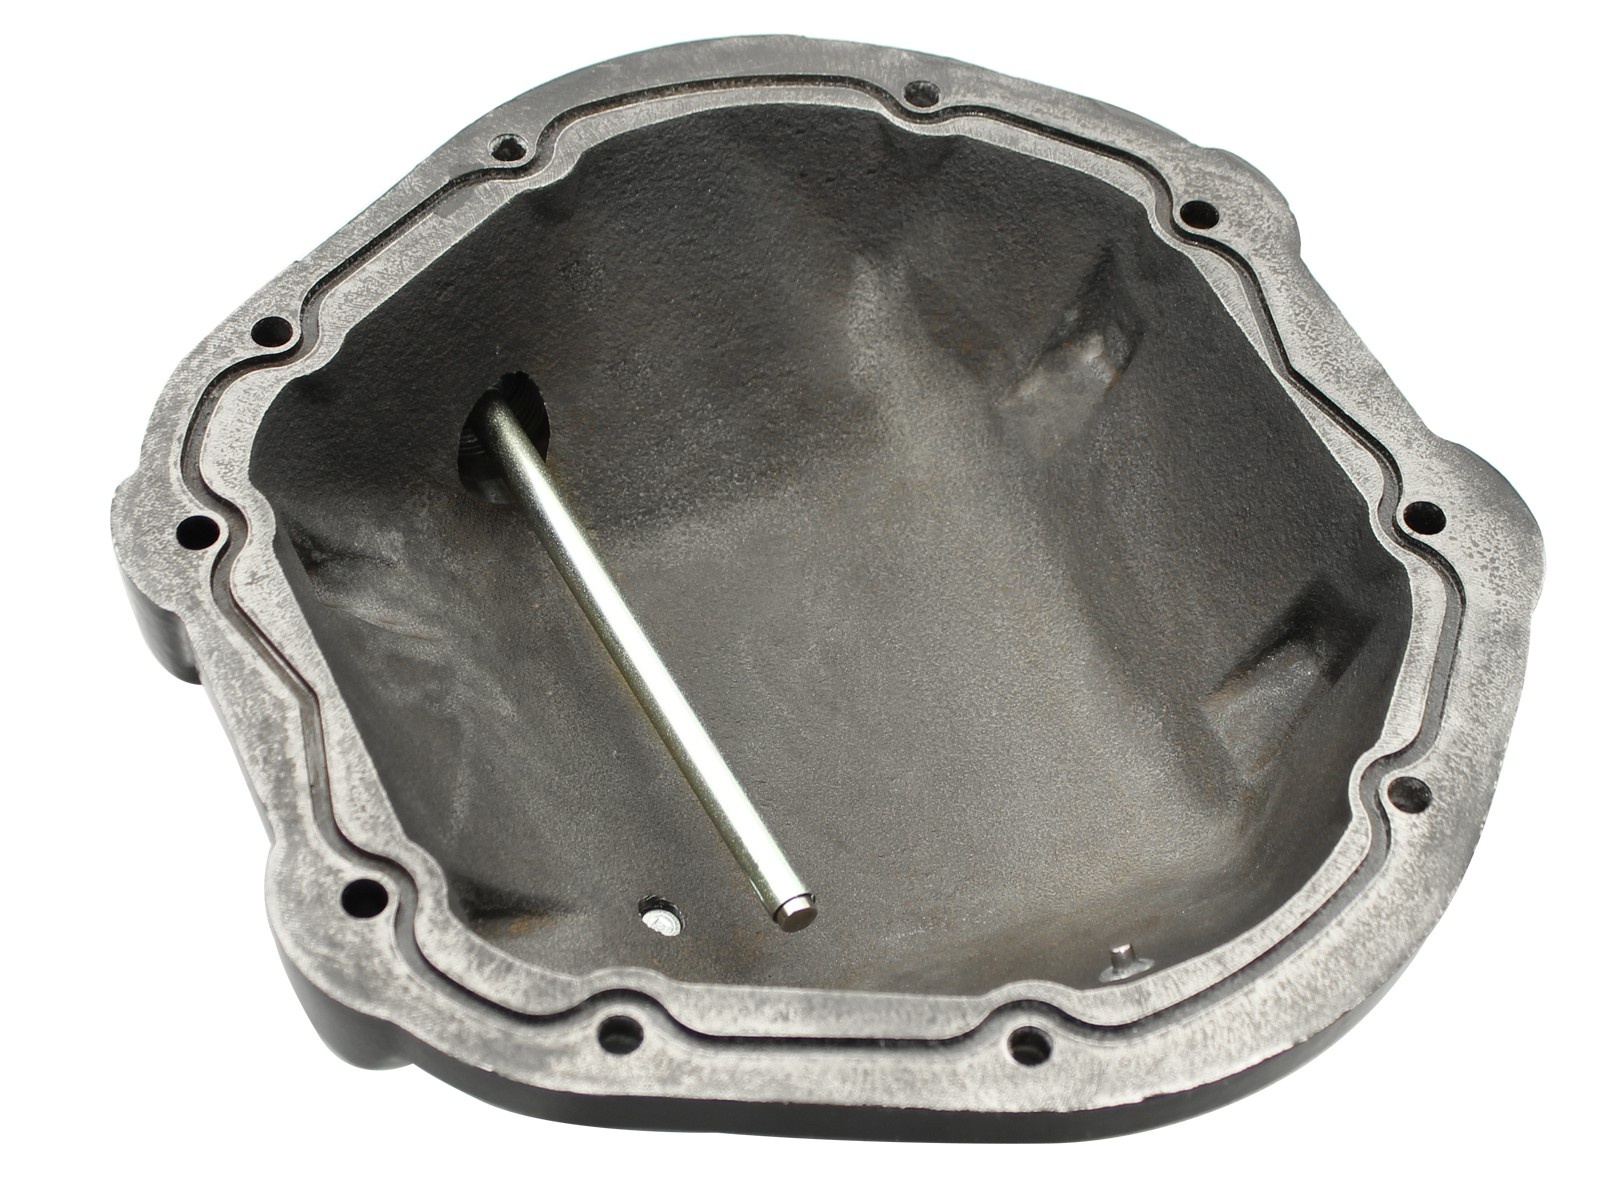 Differential Cover Machined Fins Afe Power Jeep Wrangler Fluid Next